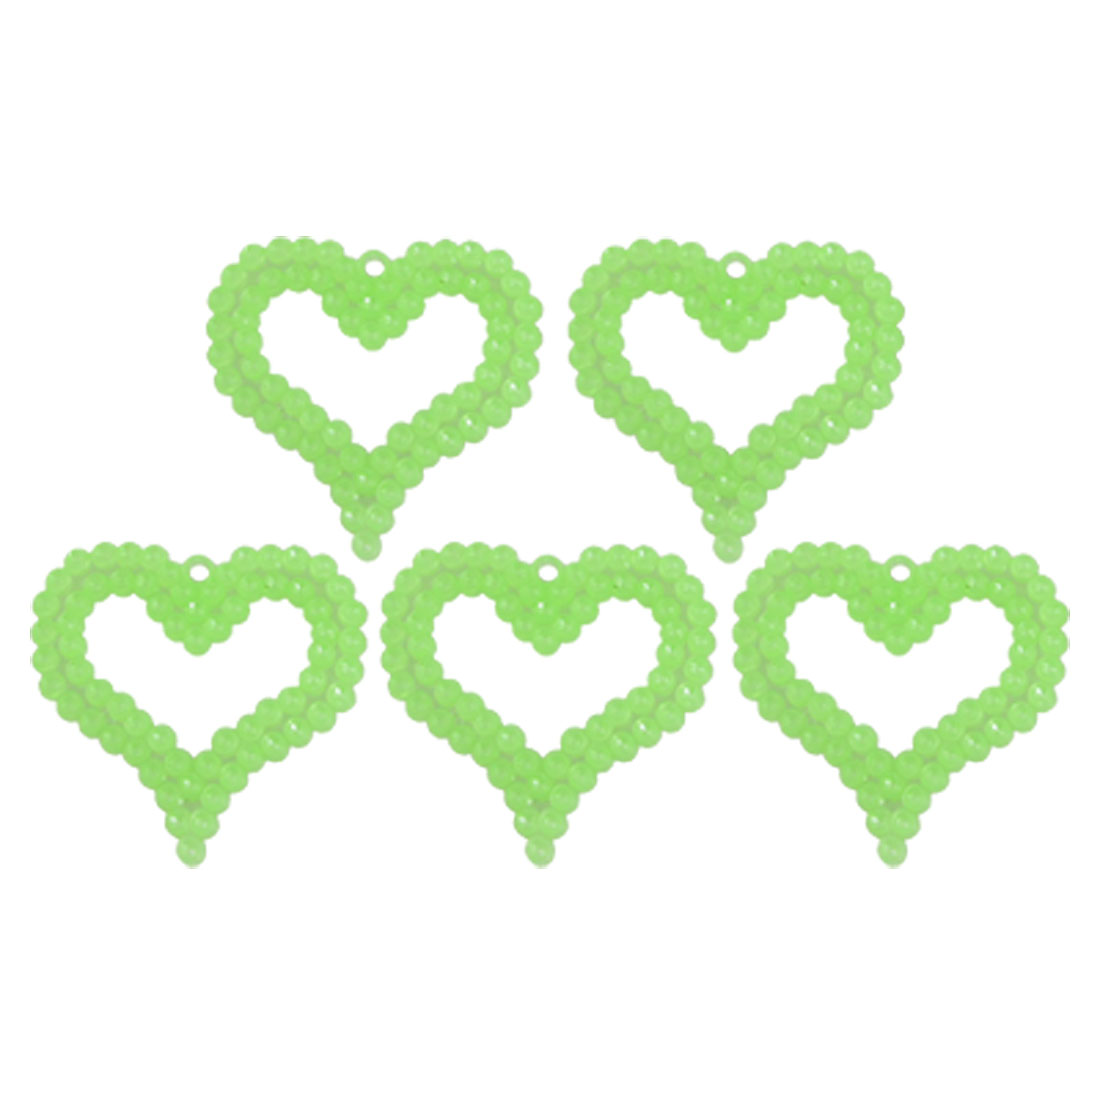 Double Layer Heart Green Plastic 10 Pcs Fluorescent Decor